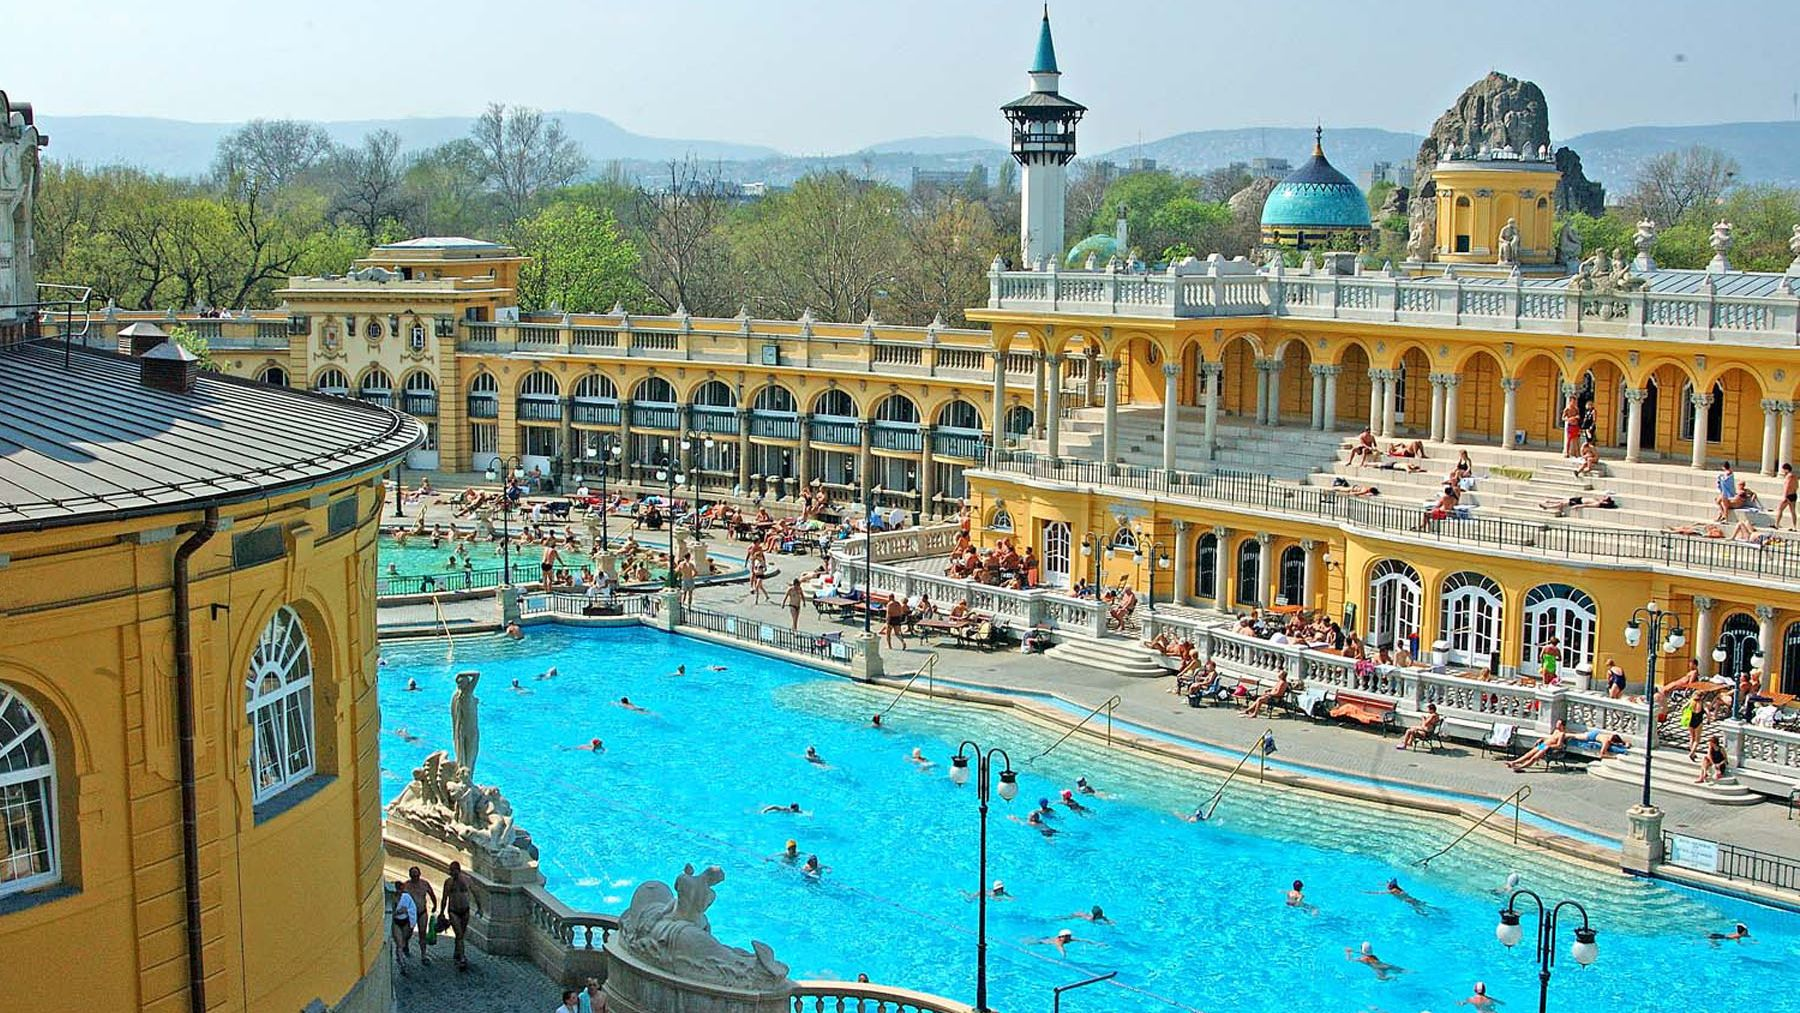 pool and surrounding buildings in budapest